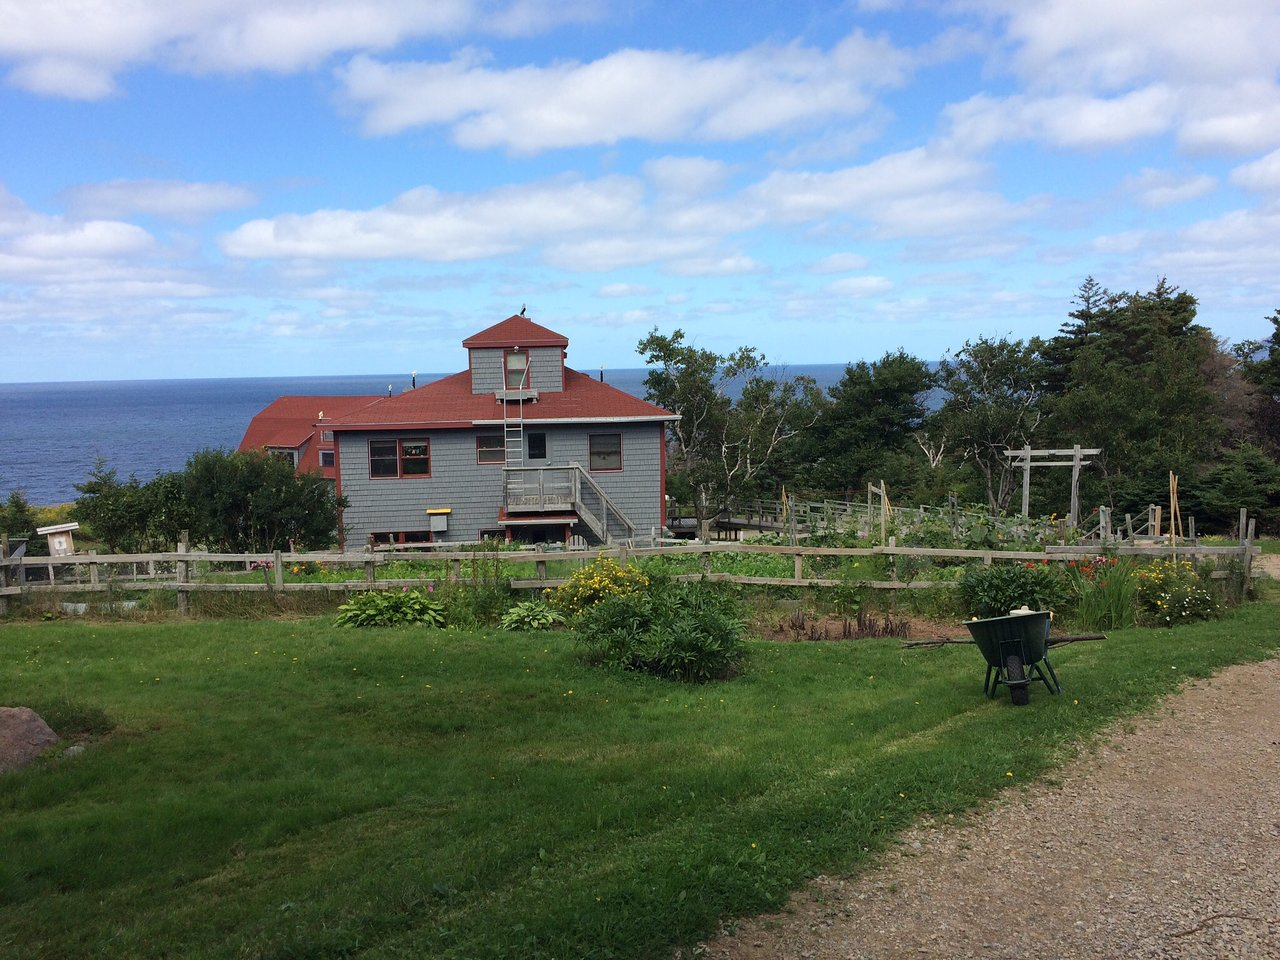 Gampo Abbey Monastery Cape Breton Island Updated 2020 All You Need To Know Before You Go With Photos